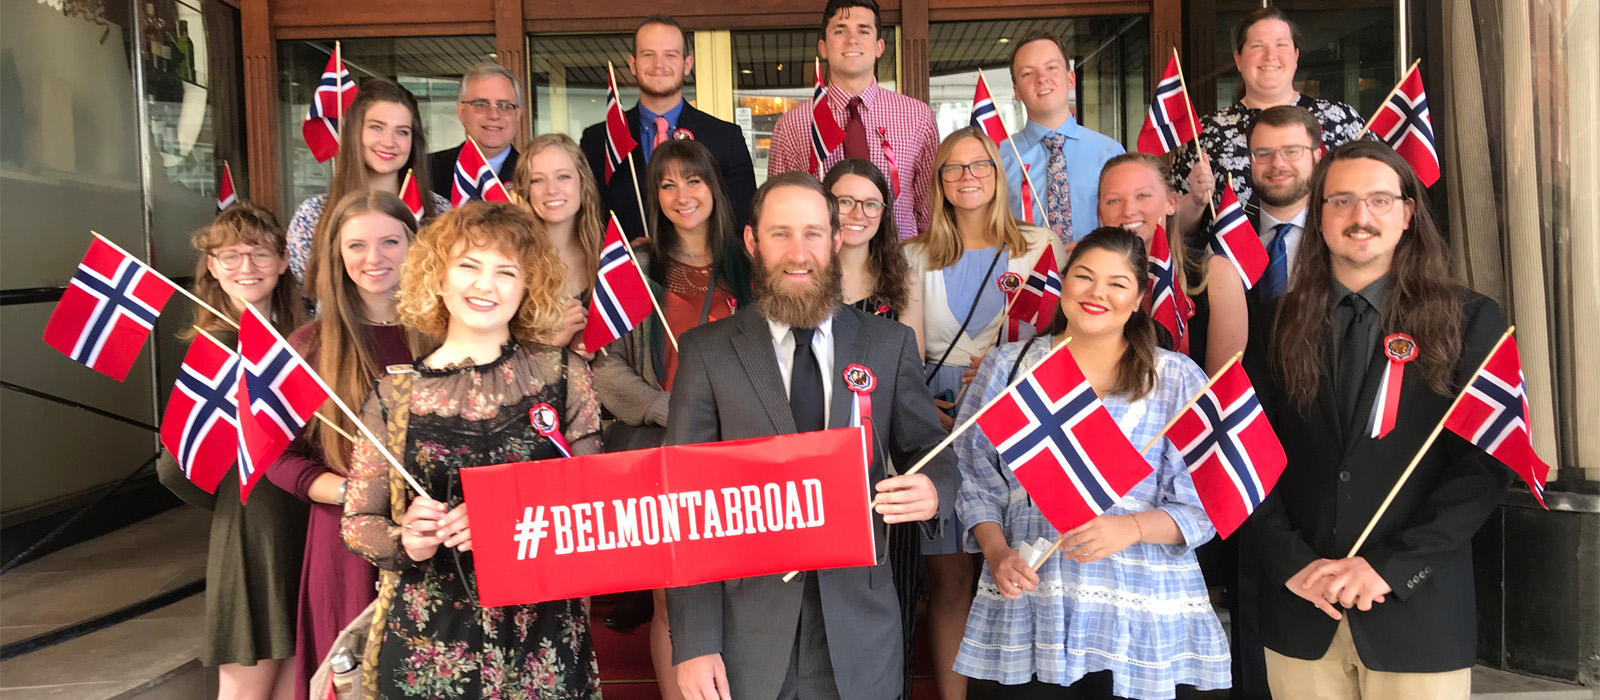 Belmont students pose for a photo in Norway